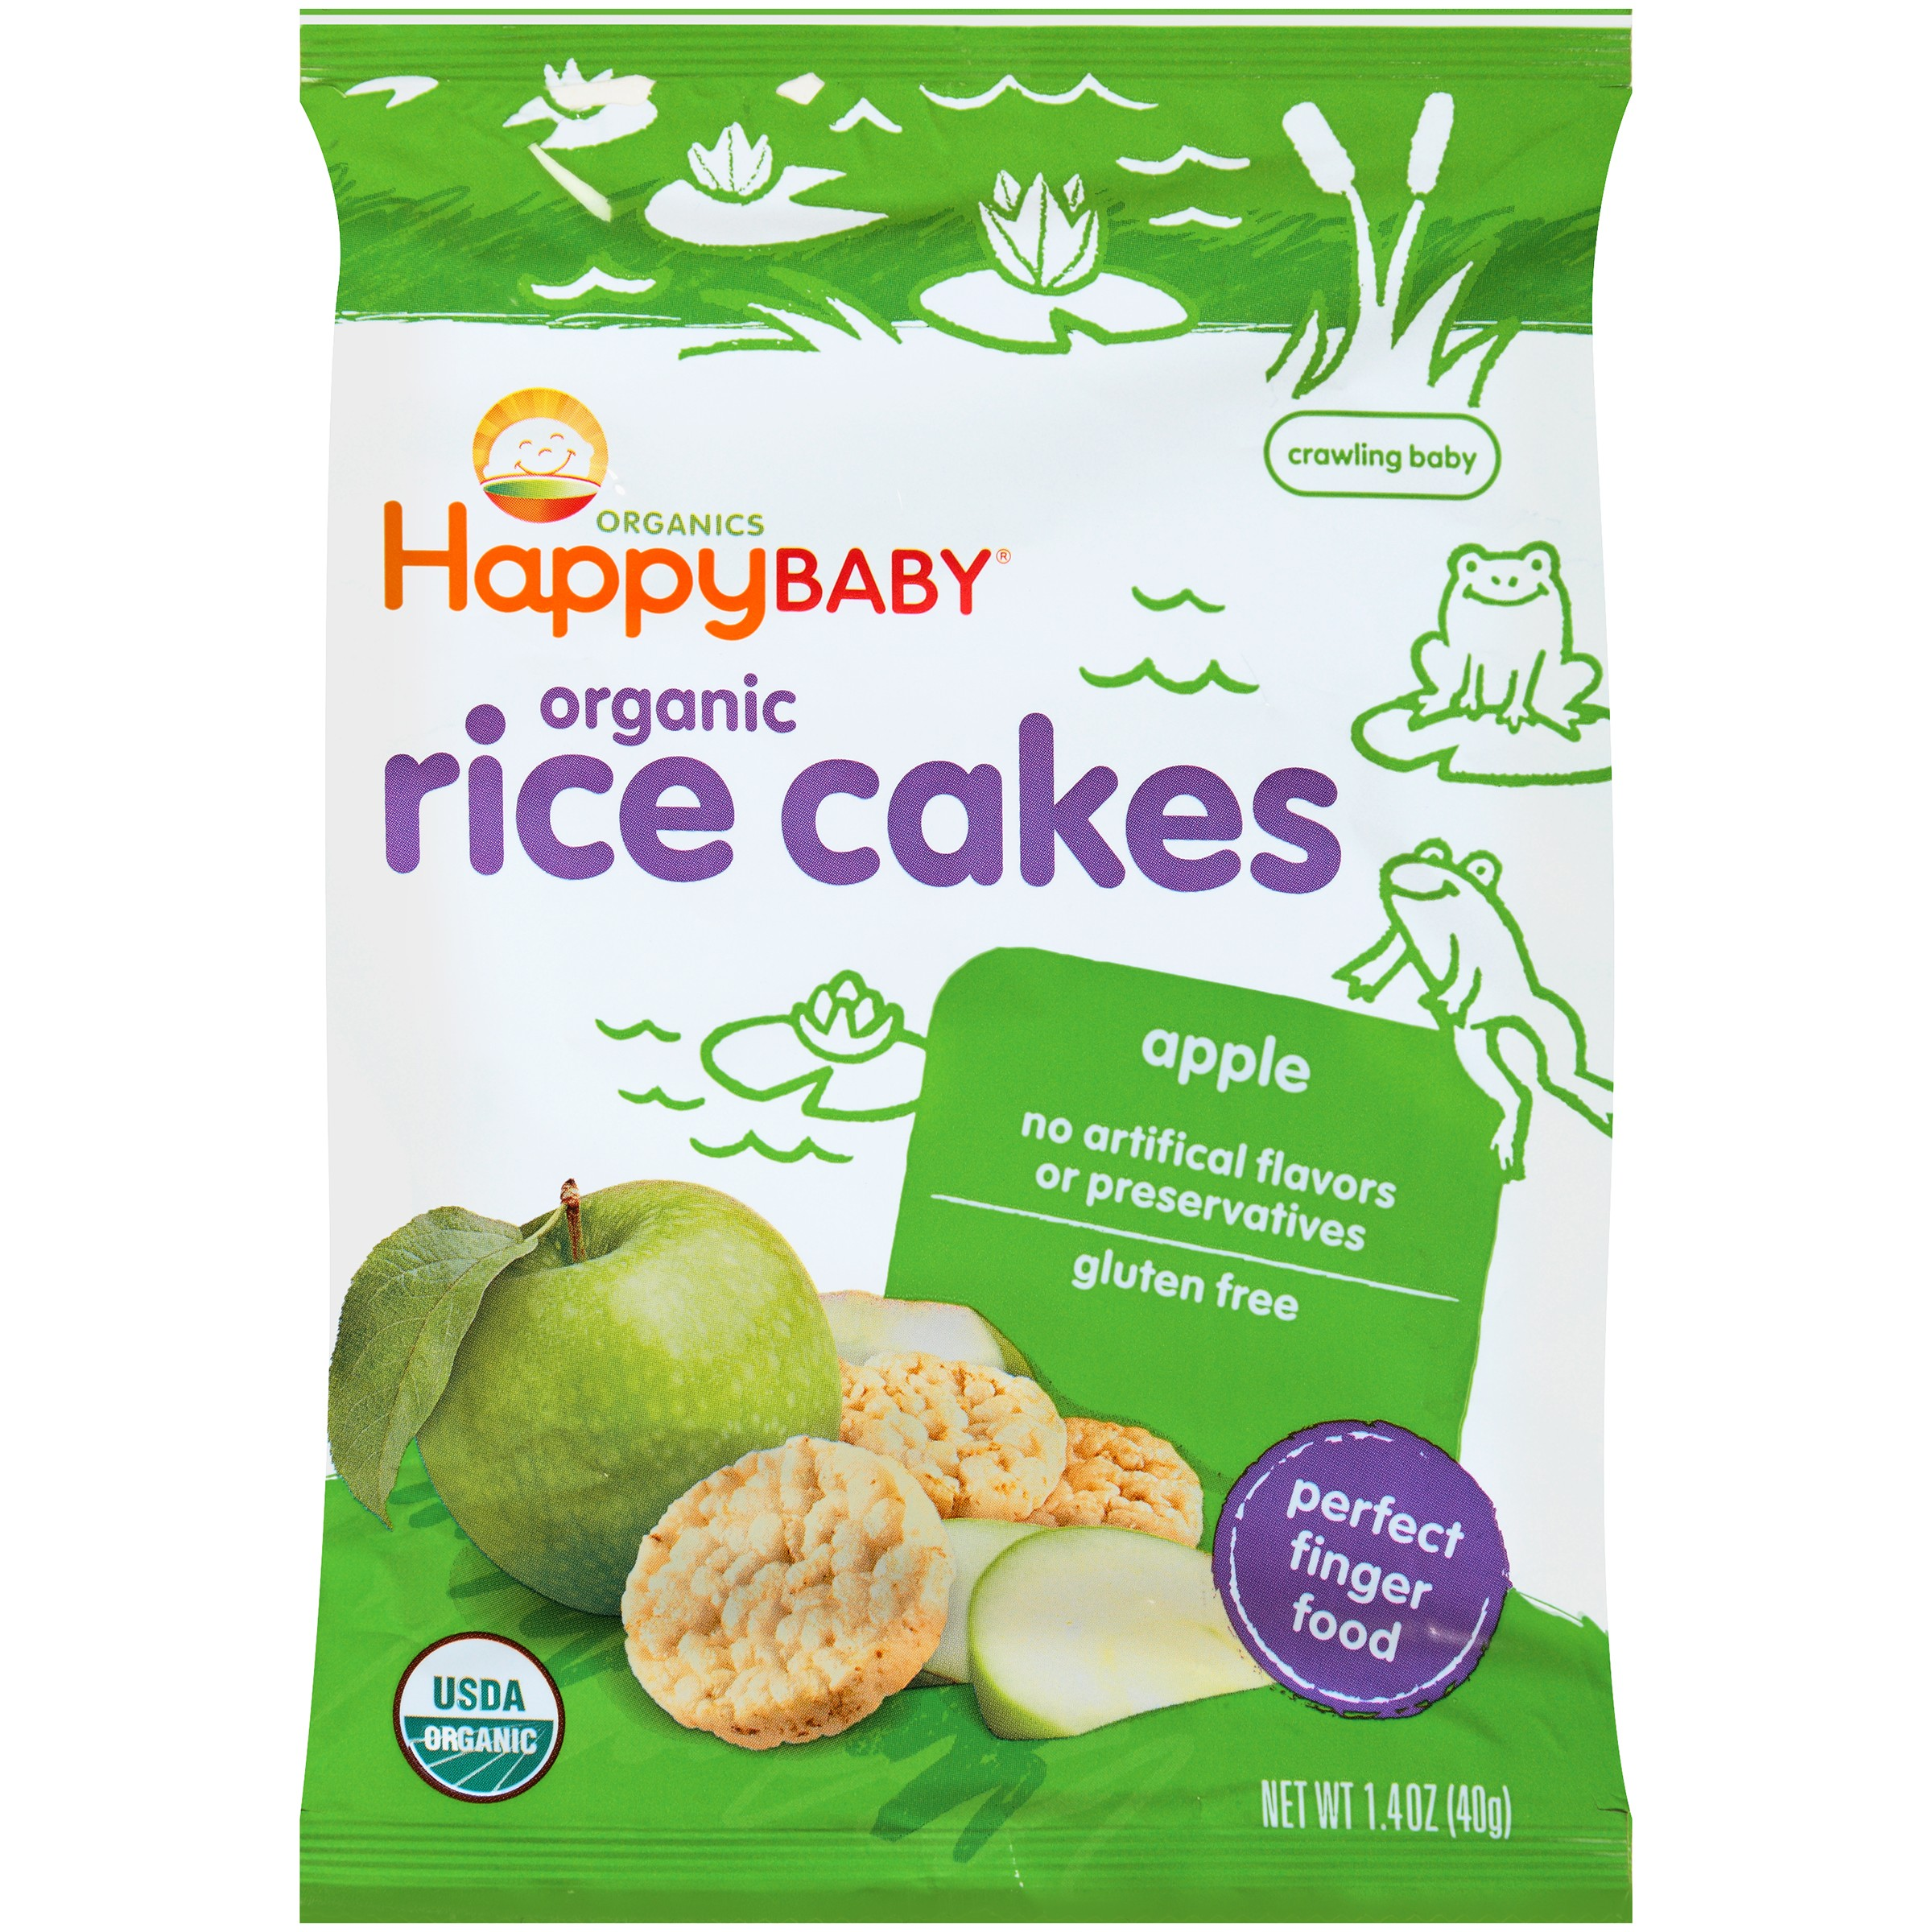 Happy Baby Rice Cakes, Organic Baby Food, Apple 1.4oz bag by Happy Family